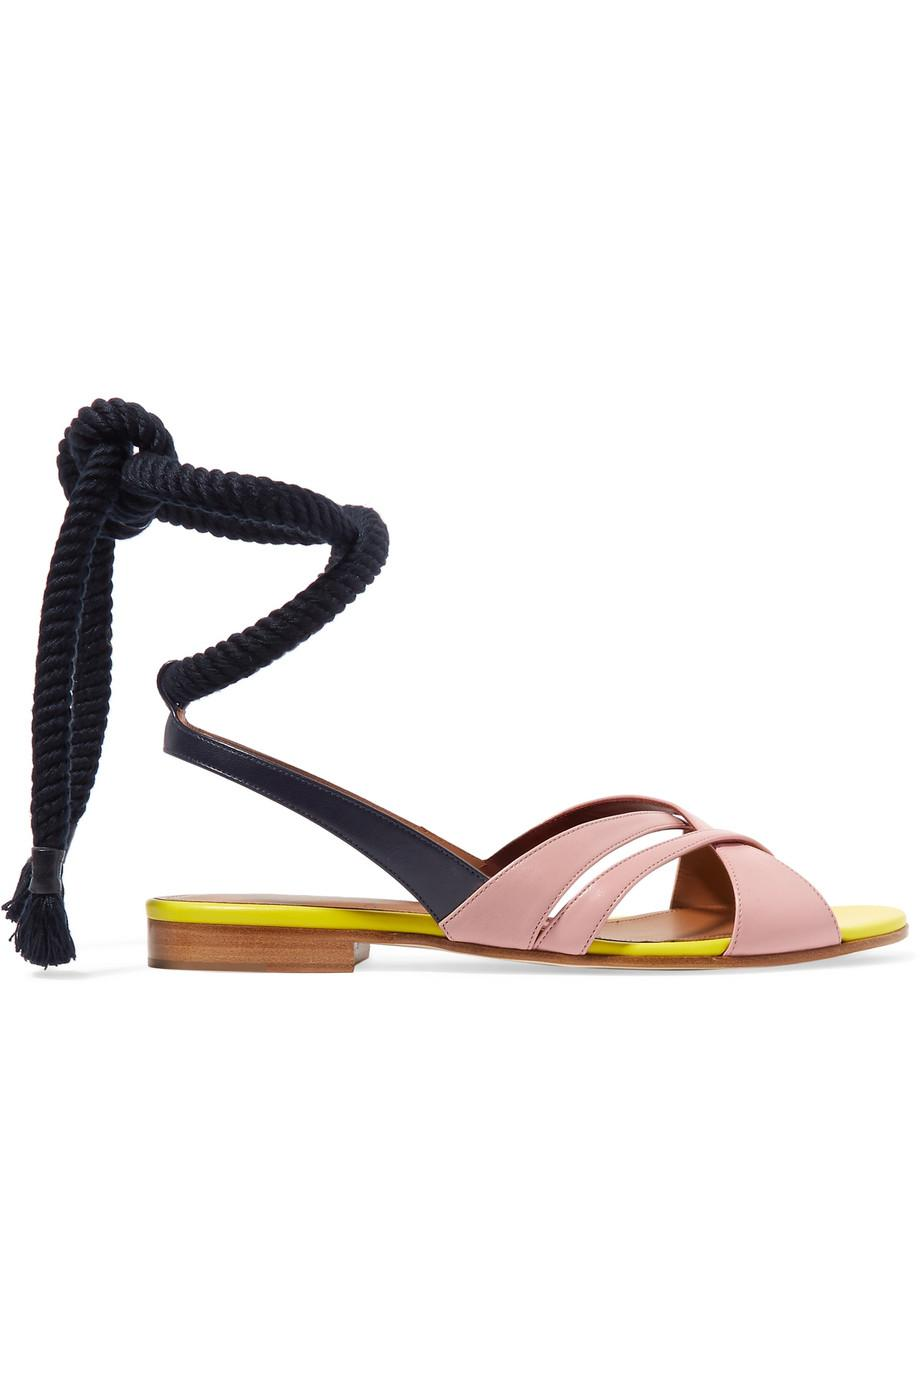 + Roksanda Marlene Color-block Leather Sandals - Midnight blue Malone Souliers Outlet Cheap Quality 6eq8sS